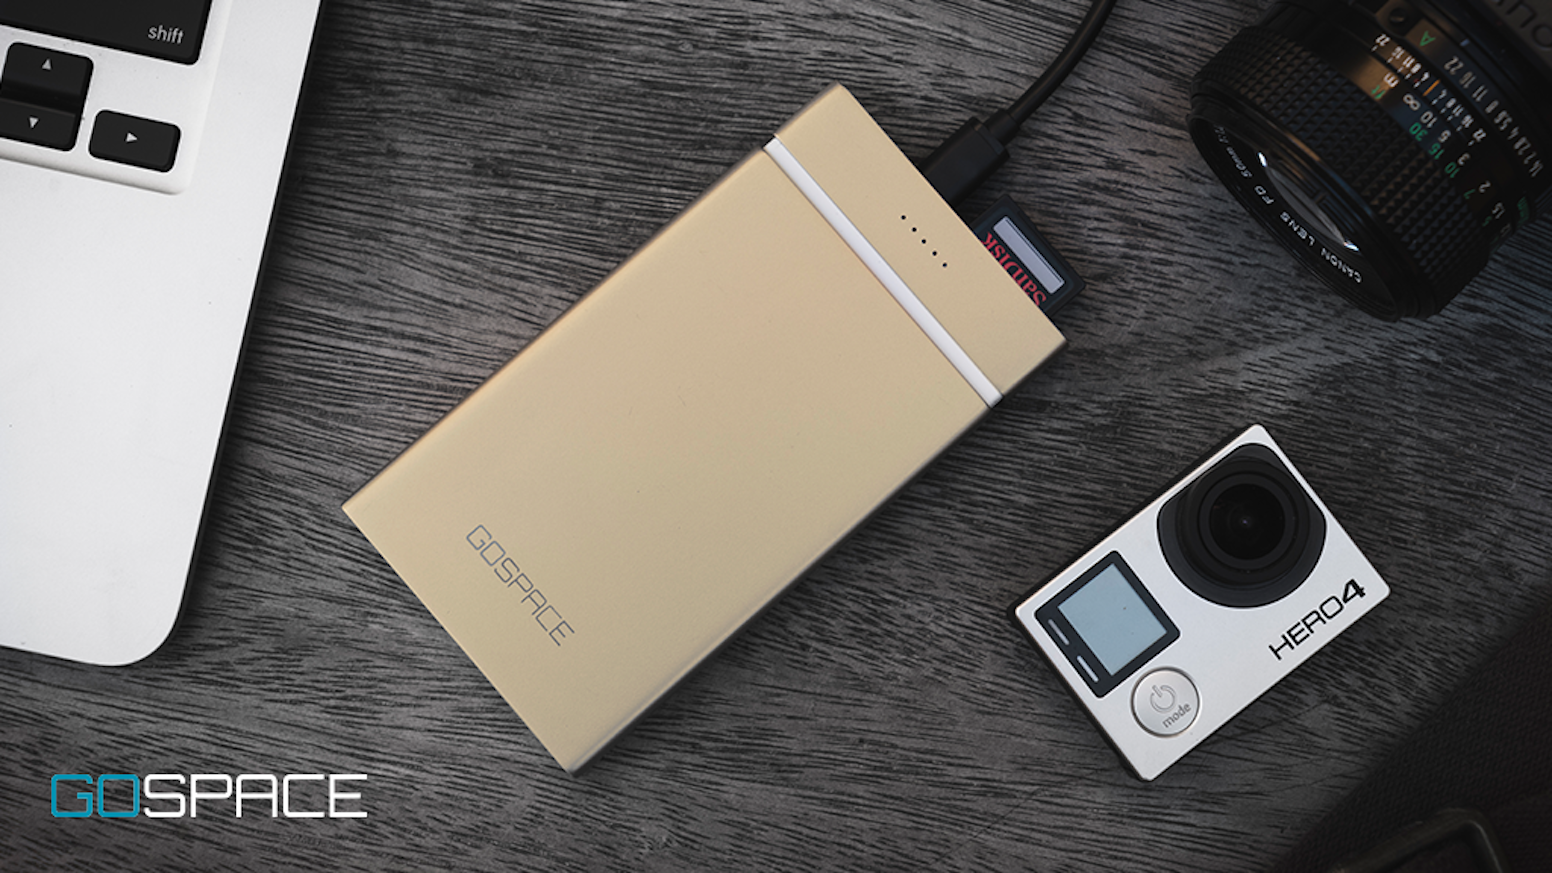 GOSPACE is a wireless external drive with Qi charging and 5G streaming capabilities.